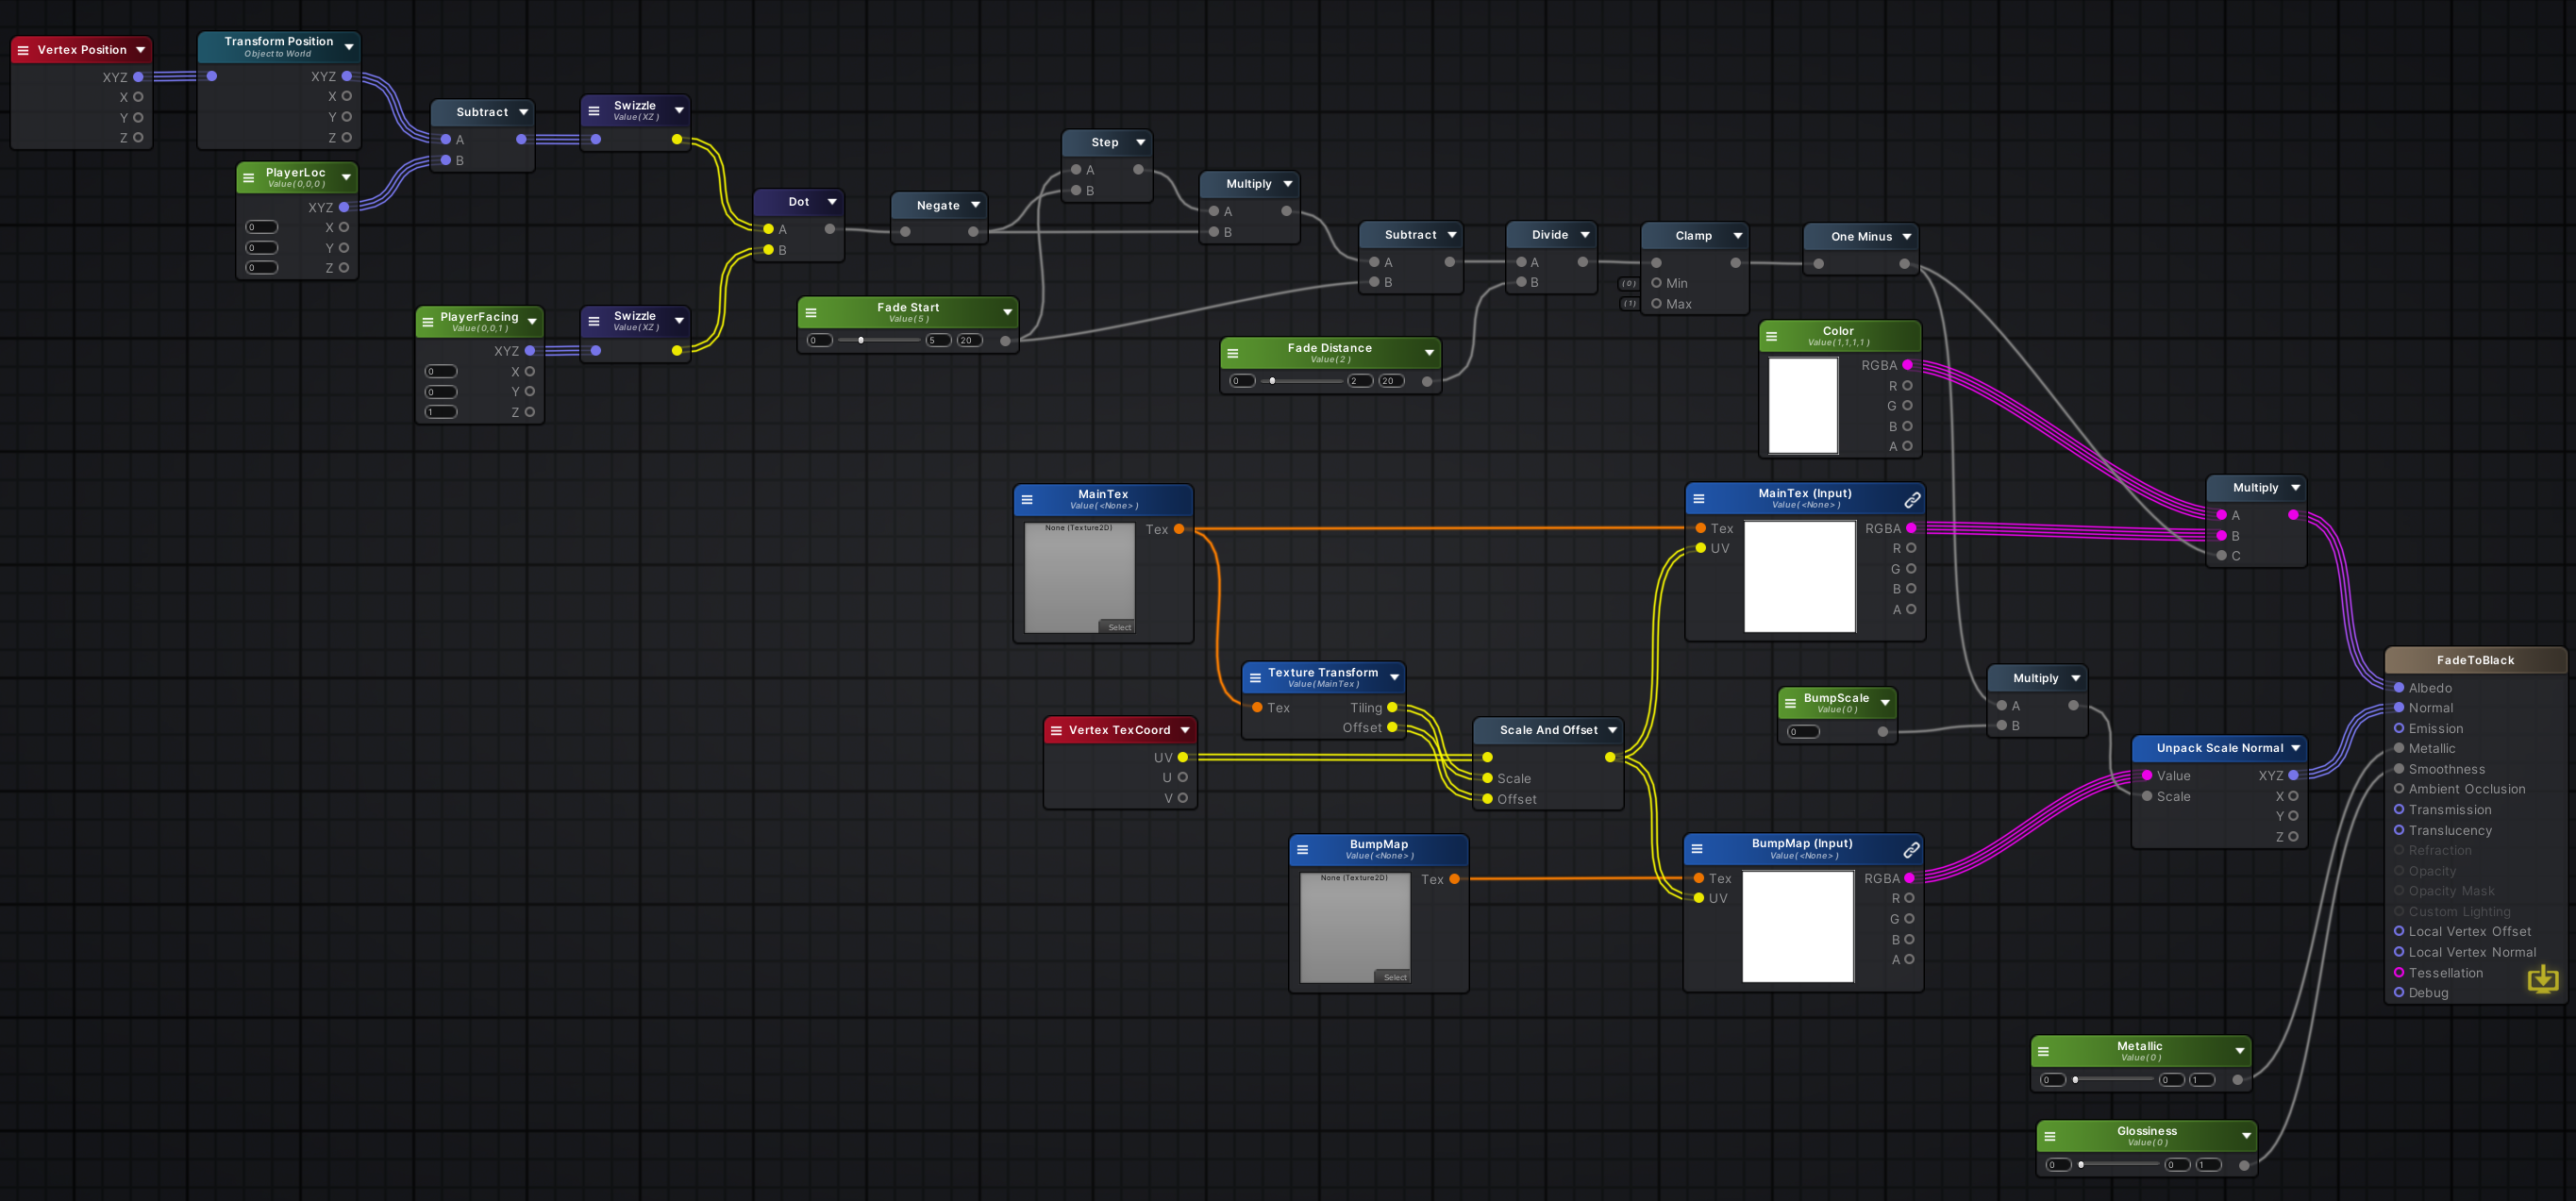 A screenshot showing the visual layout of the Fade to Black shader.